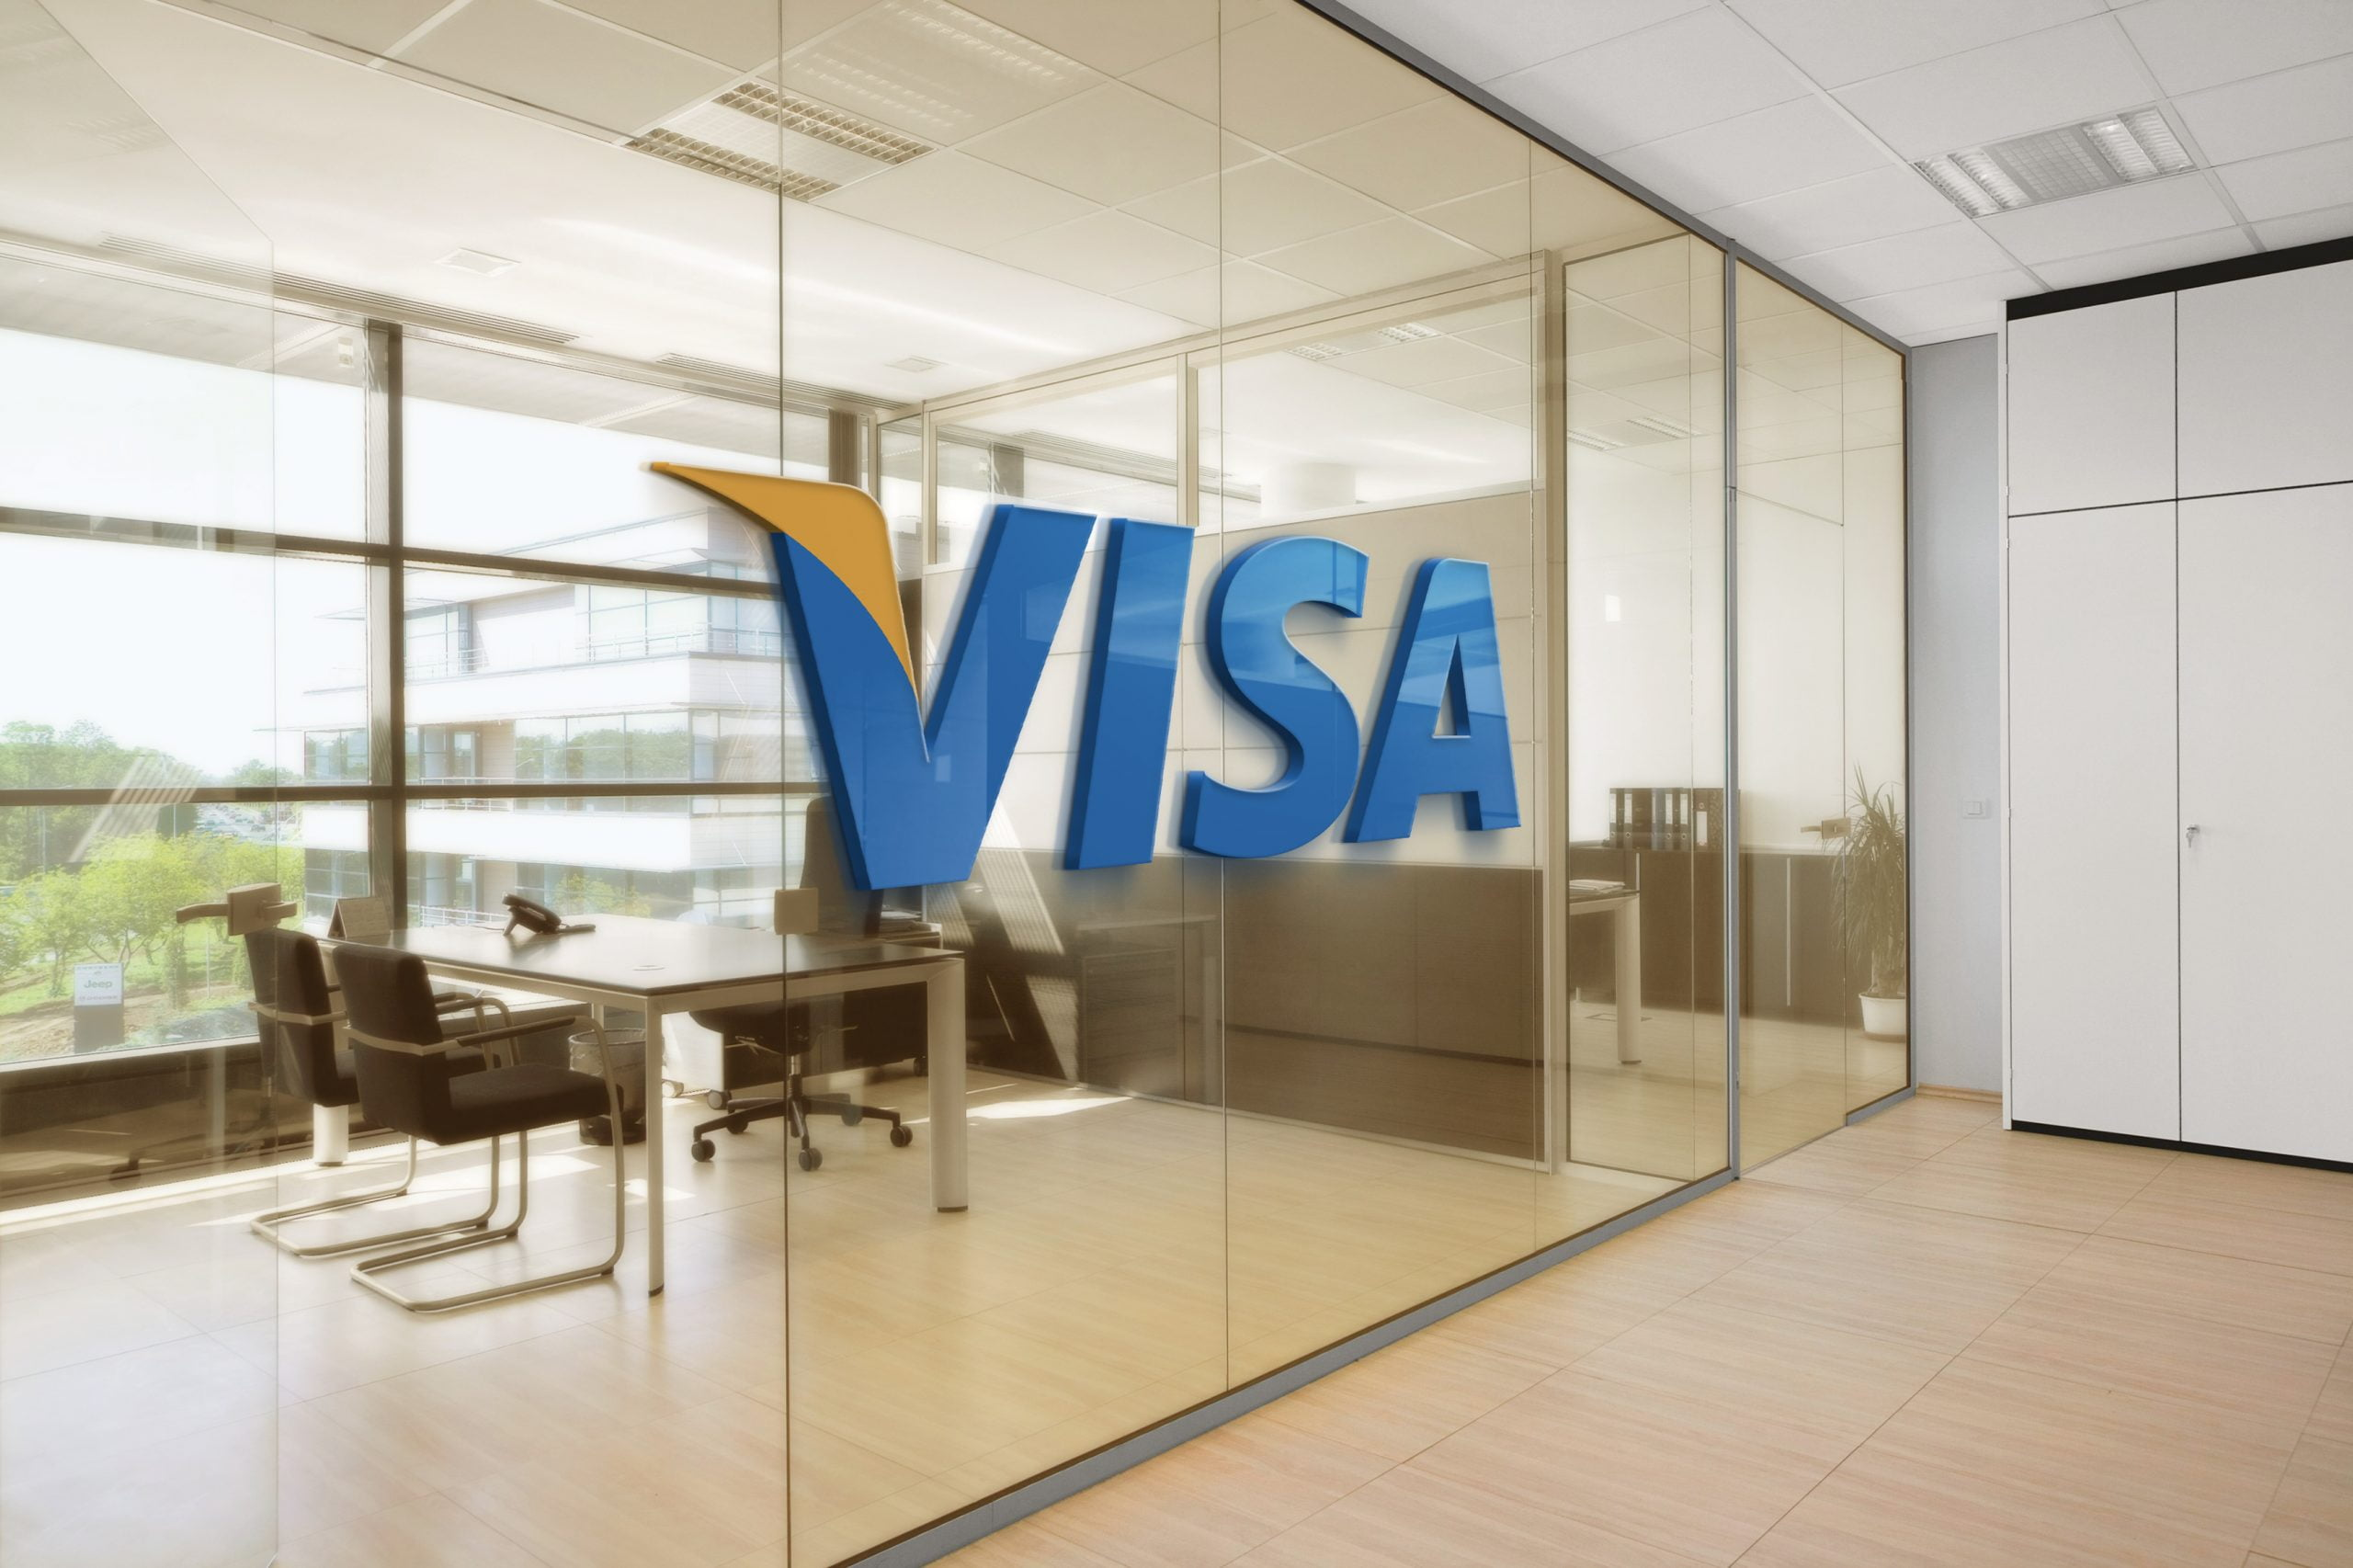 Visa Office Space Window Logo Mockup